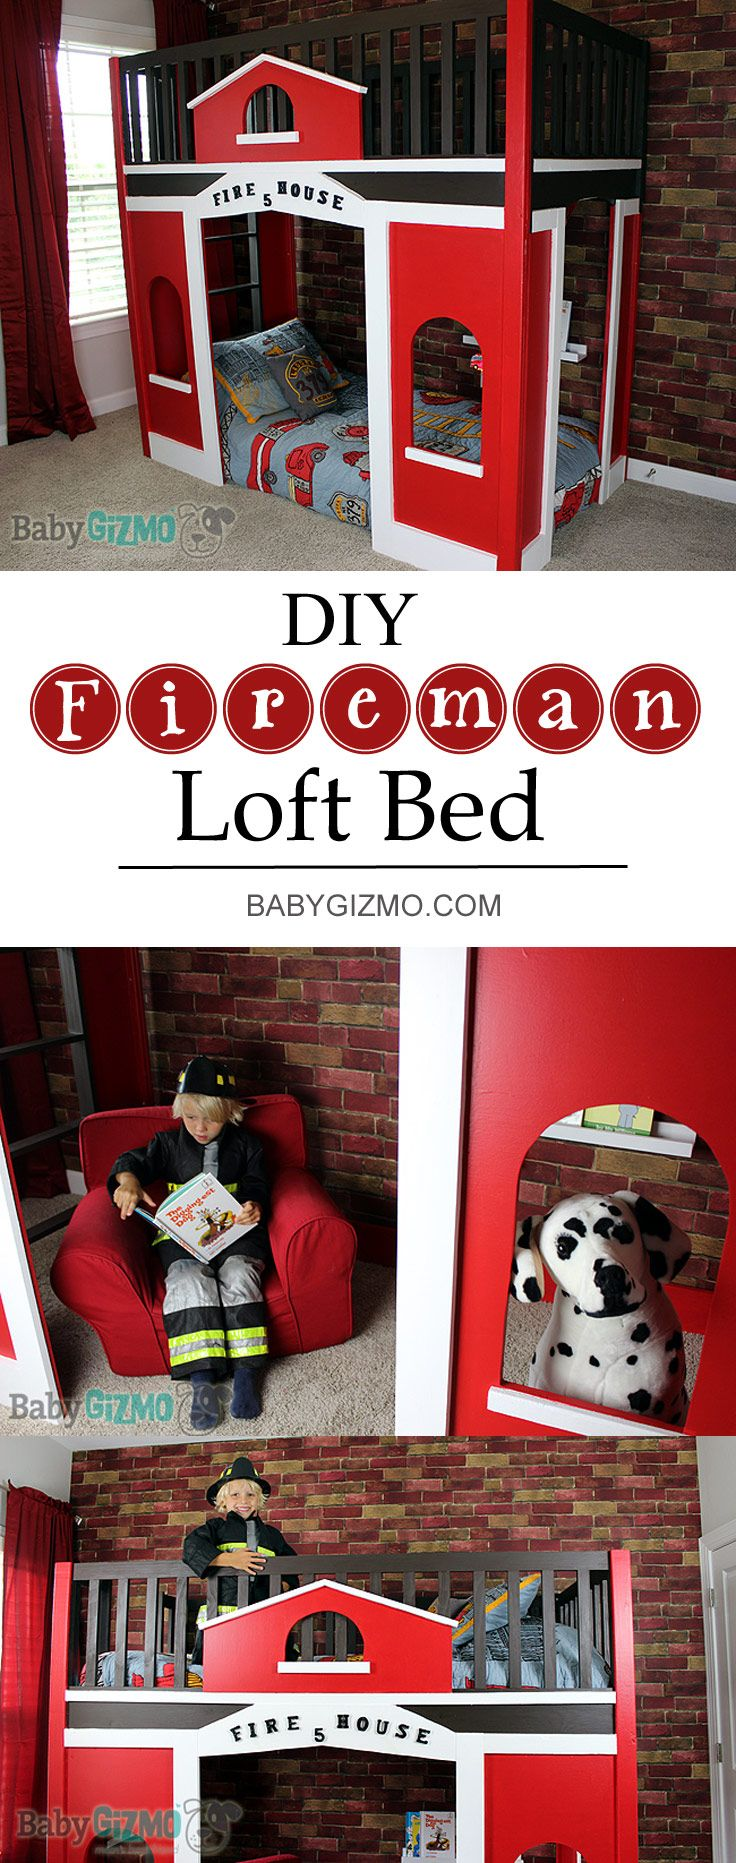 Want to make your child's bedroom amazing?! You can make a Pottery Barn Kids quality bed for a fraction of the cost! Find out how to make this Firehouse Bed!